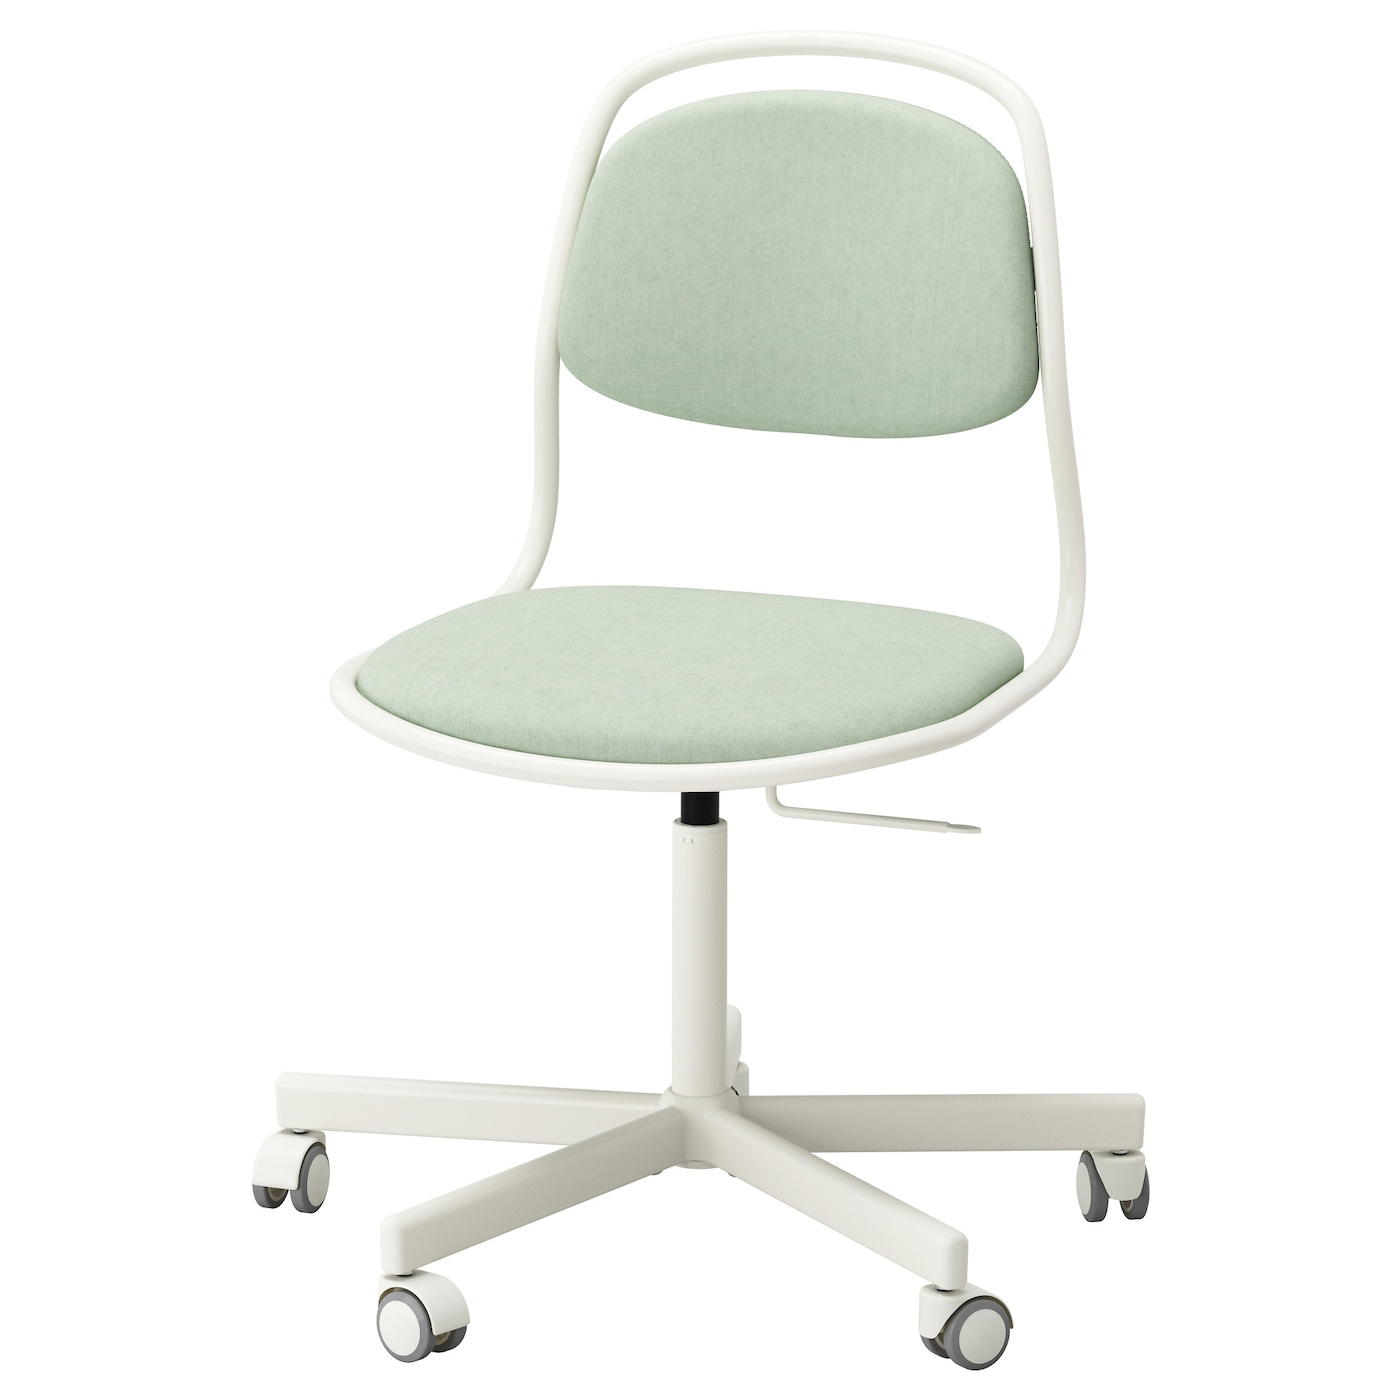 in chair hours better mood for support chairs back size full good target pain wheels images of with furniture depot lumbar office long white working without comfortable